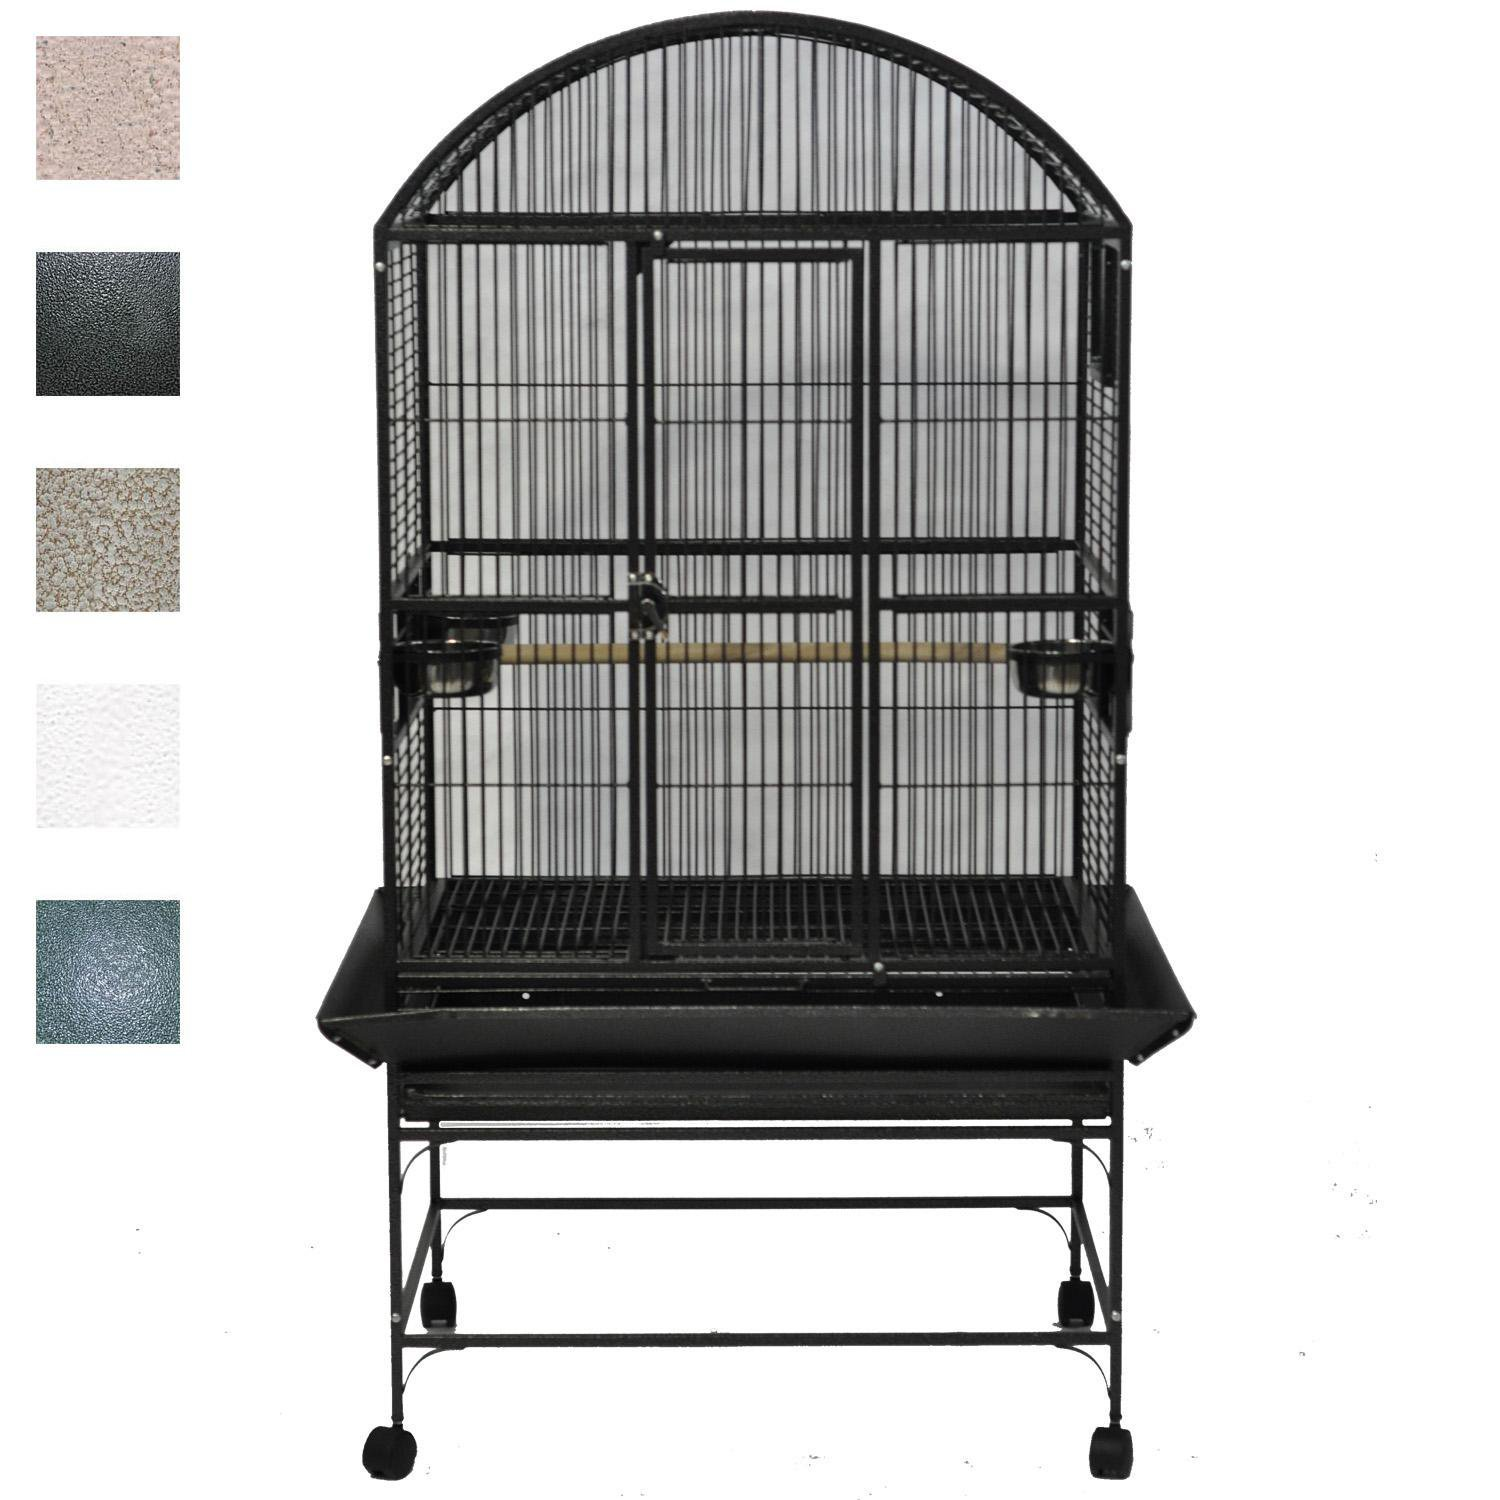 A&E CAGE CO 32-Inch by 23-Inch Dometop Bird Cage, Sandstone